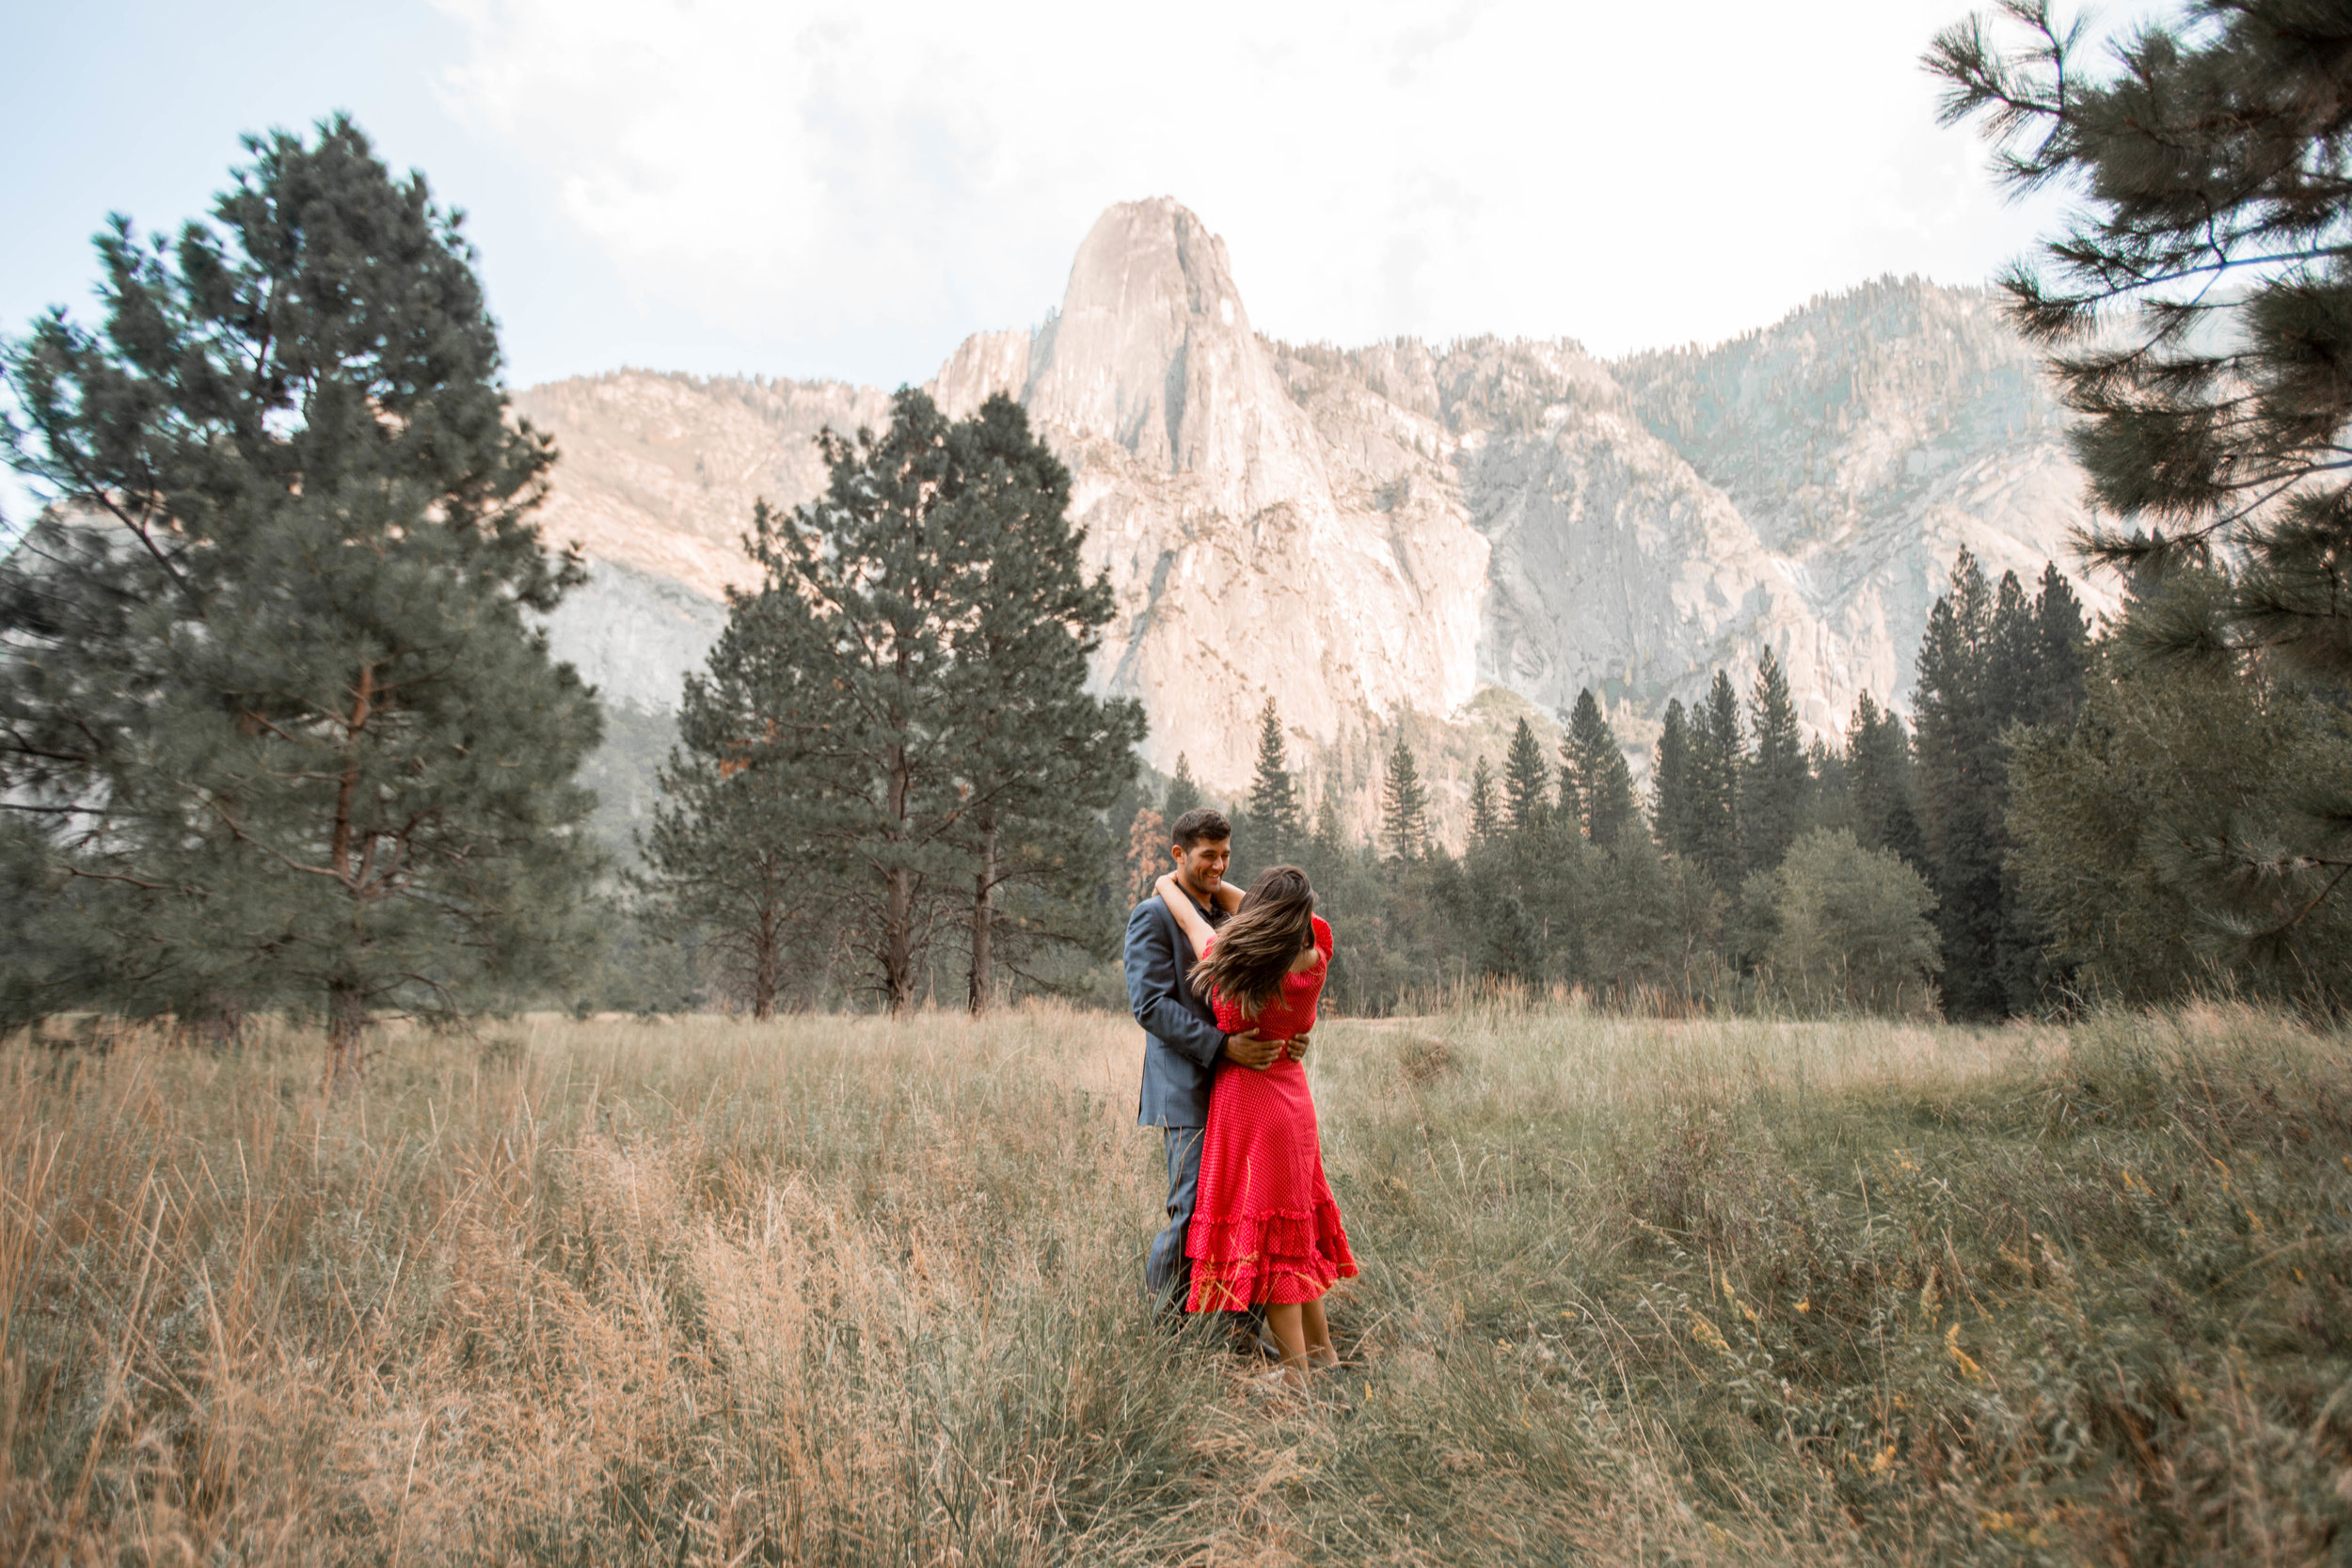 Nicole-Daacke-Photography-Yosemite-Valley-Adventurous-playful-fun-enagement-adventure-engagement-photographer-national-park-photographer-4.jpg